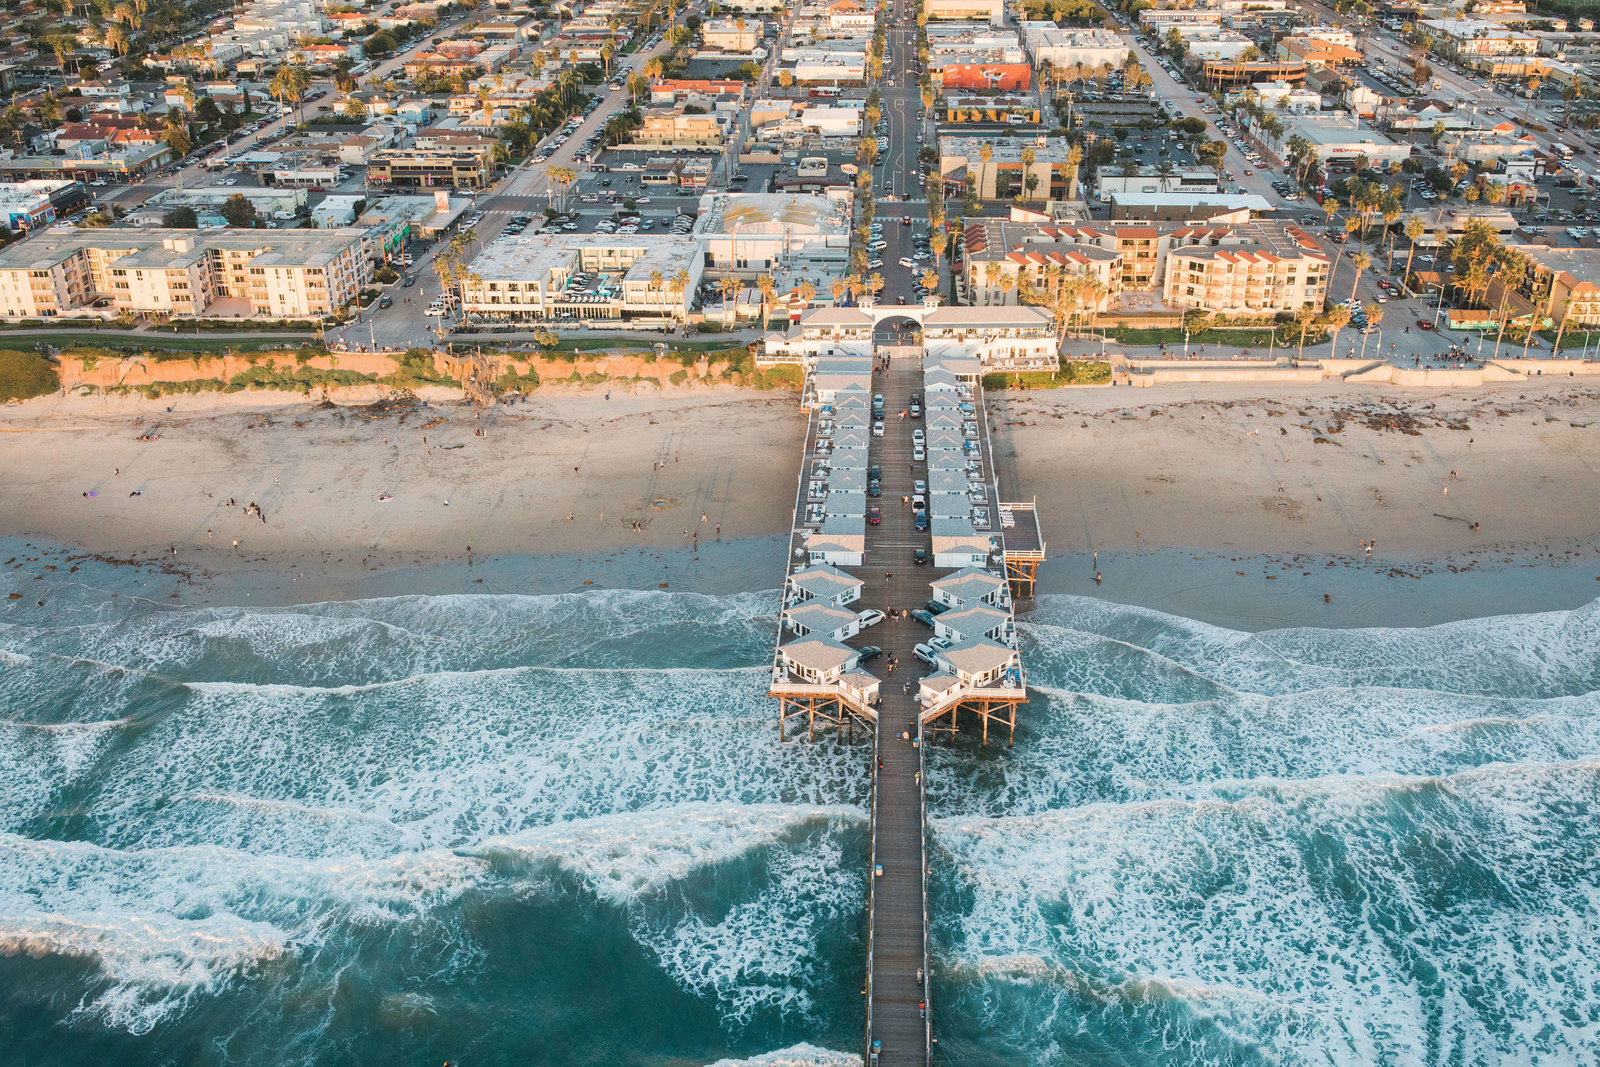 San-Diego-aerial-photos-landscapes-cityscapes-by-adina-preston-73